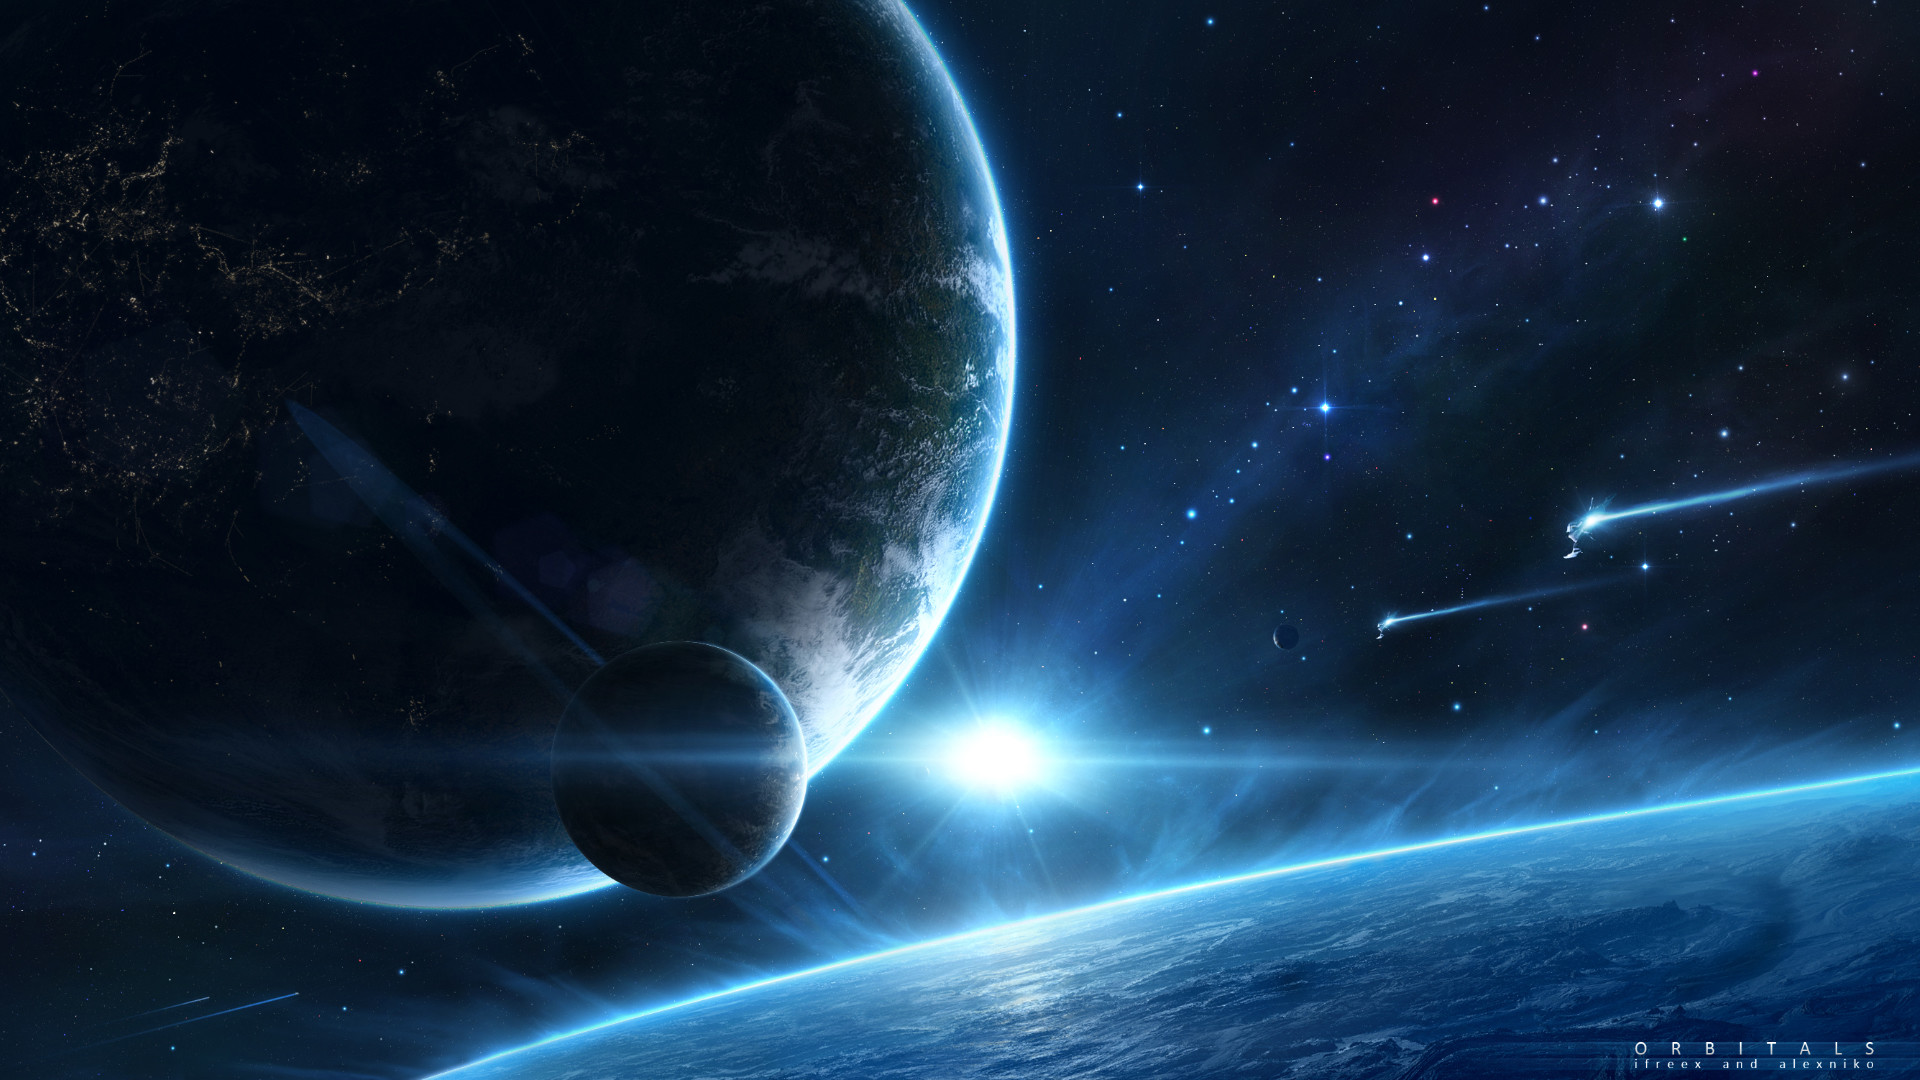 1080p wallpapers space 89 background pictures - Space backgrounds 1920x1080 ...